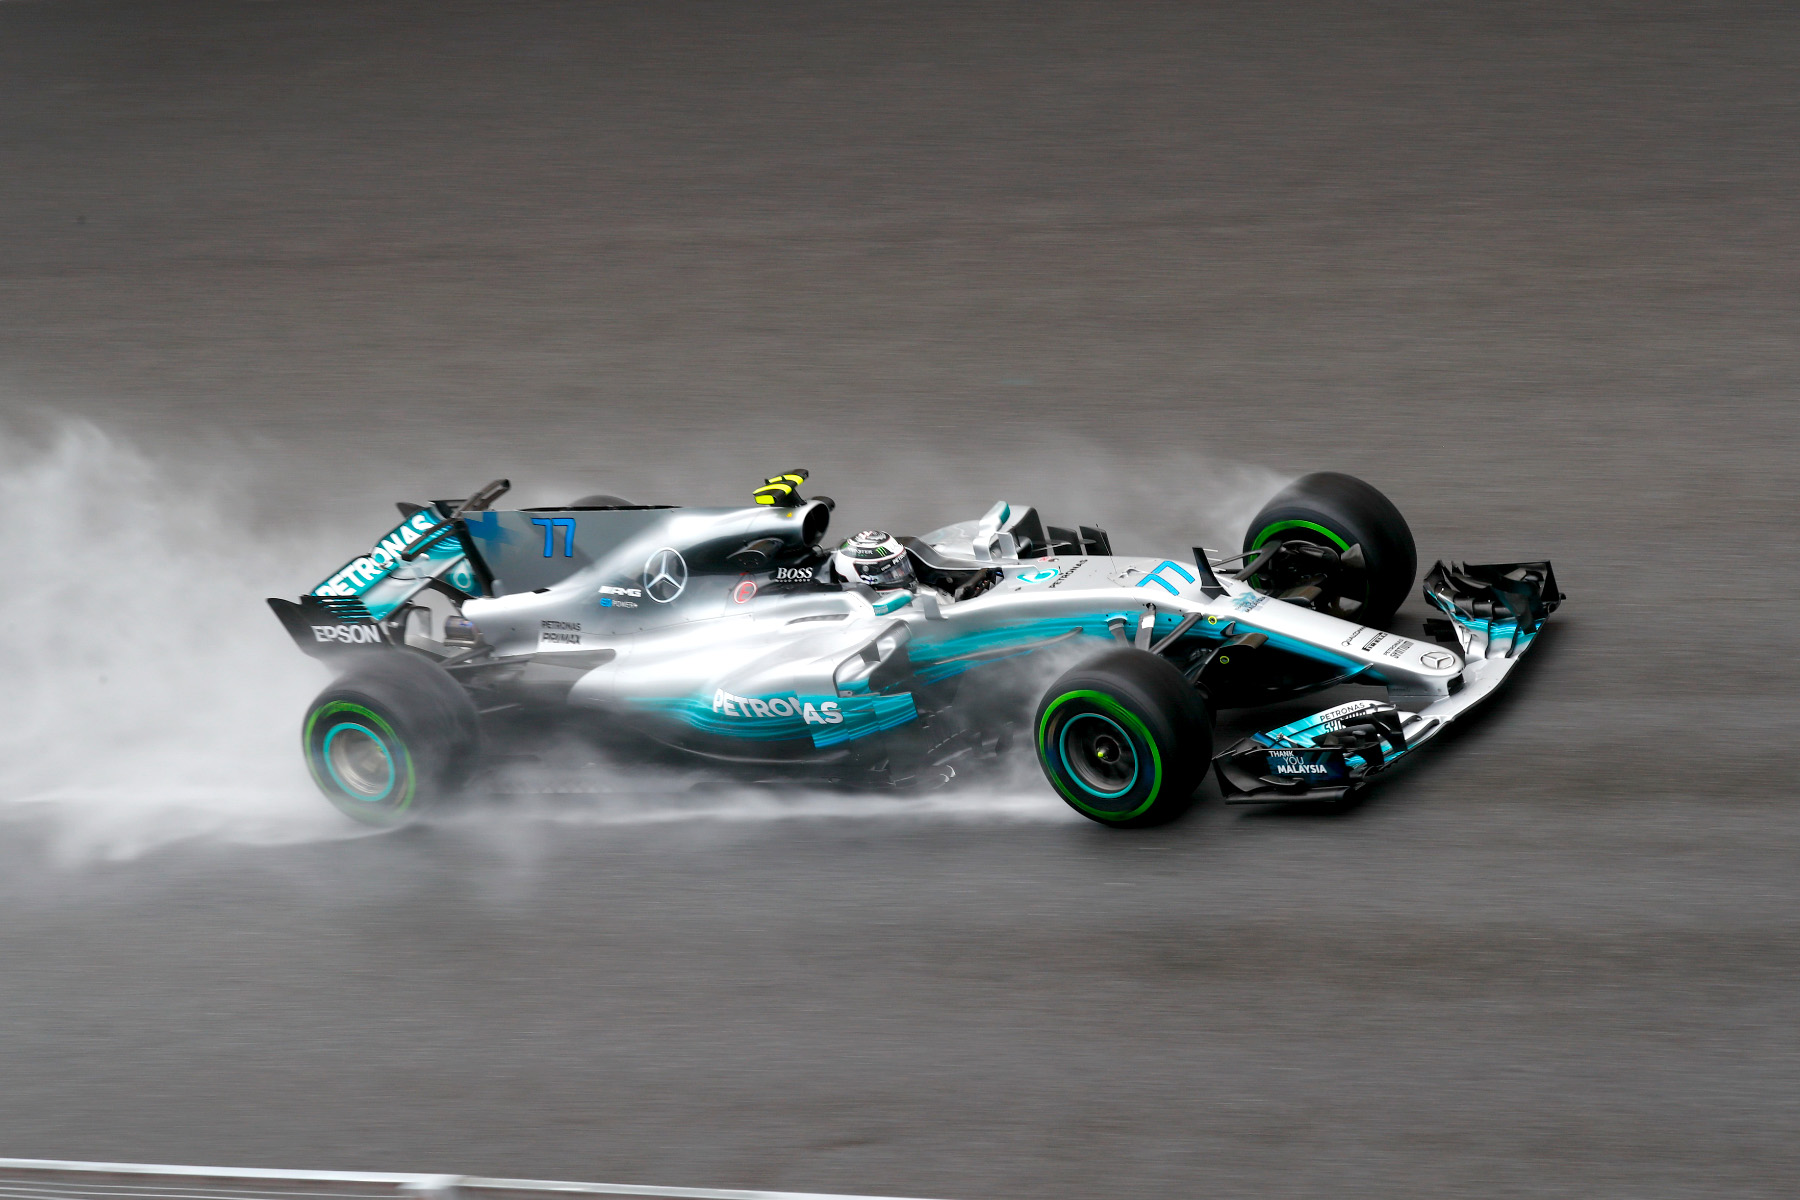 Valtteri Bottas drives in the wet during practice for the 2017 Malaysian Grand Prix.